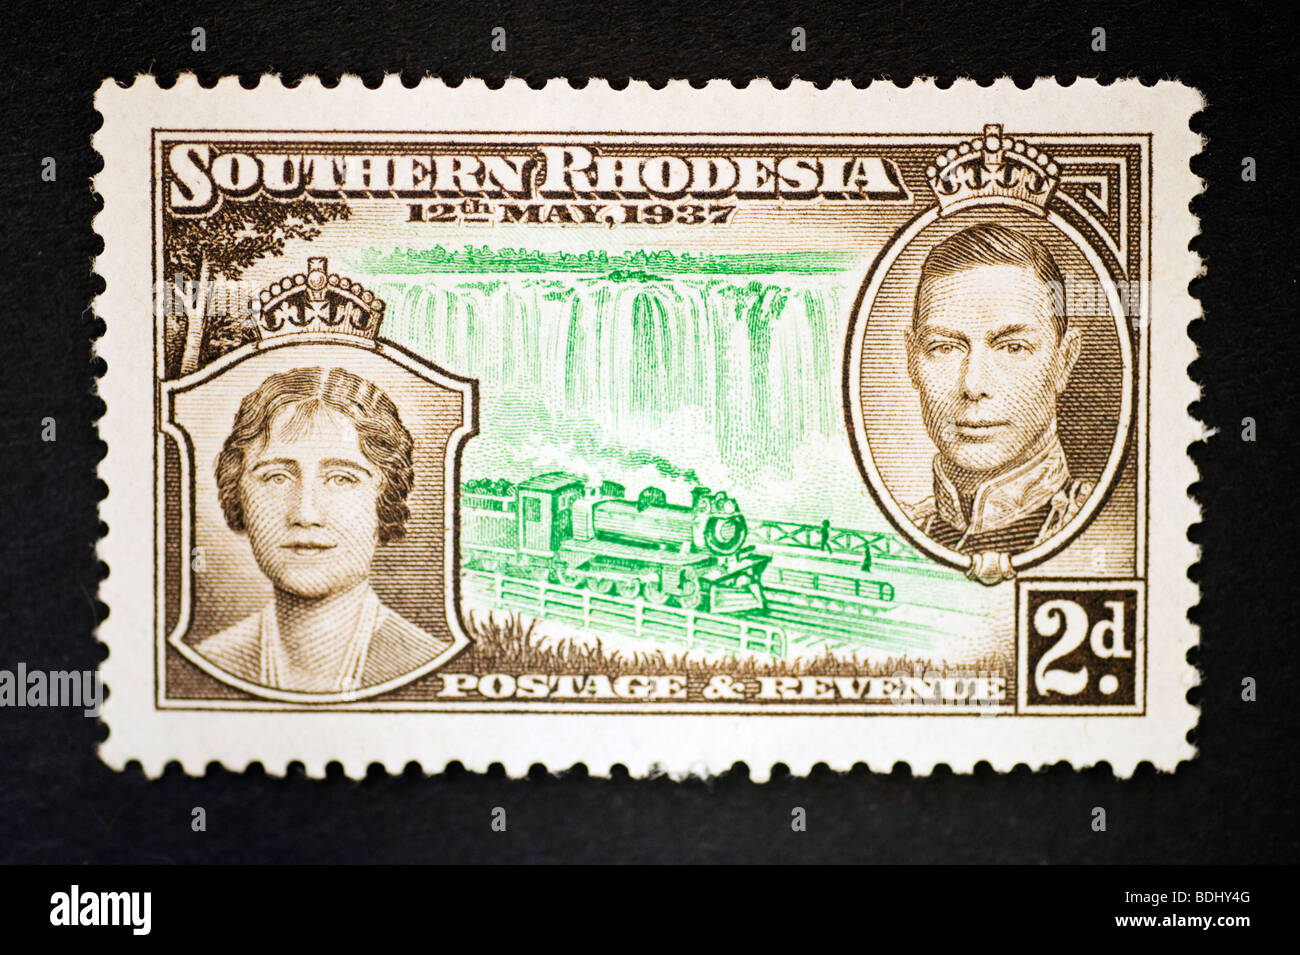 Postage stamp Southern Rhodesia Two Pence - Stock Image